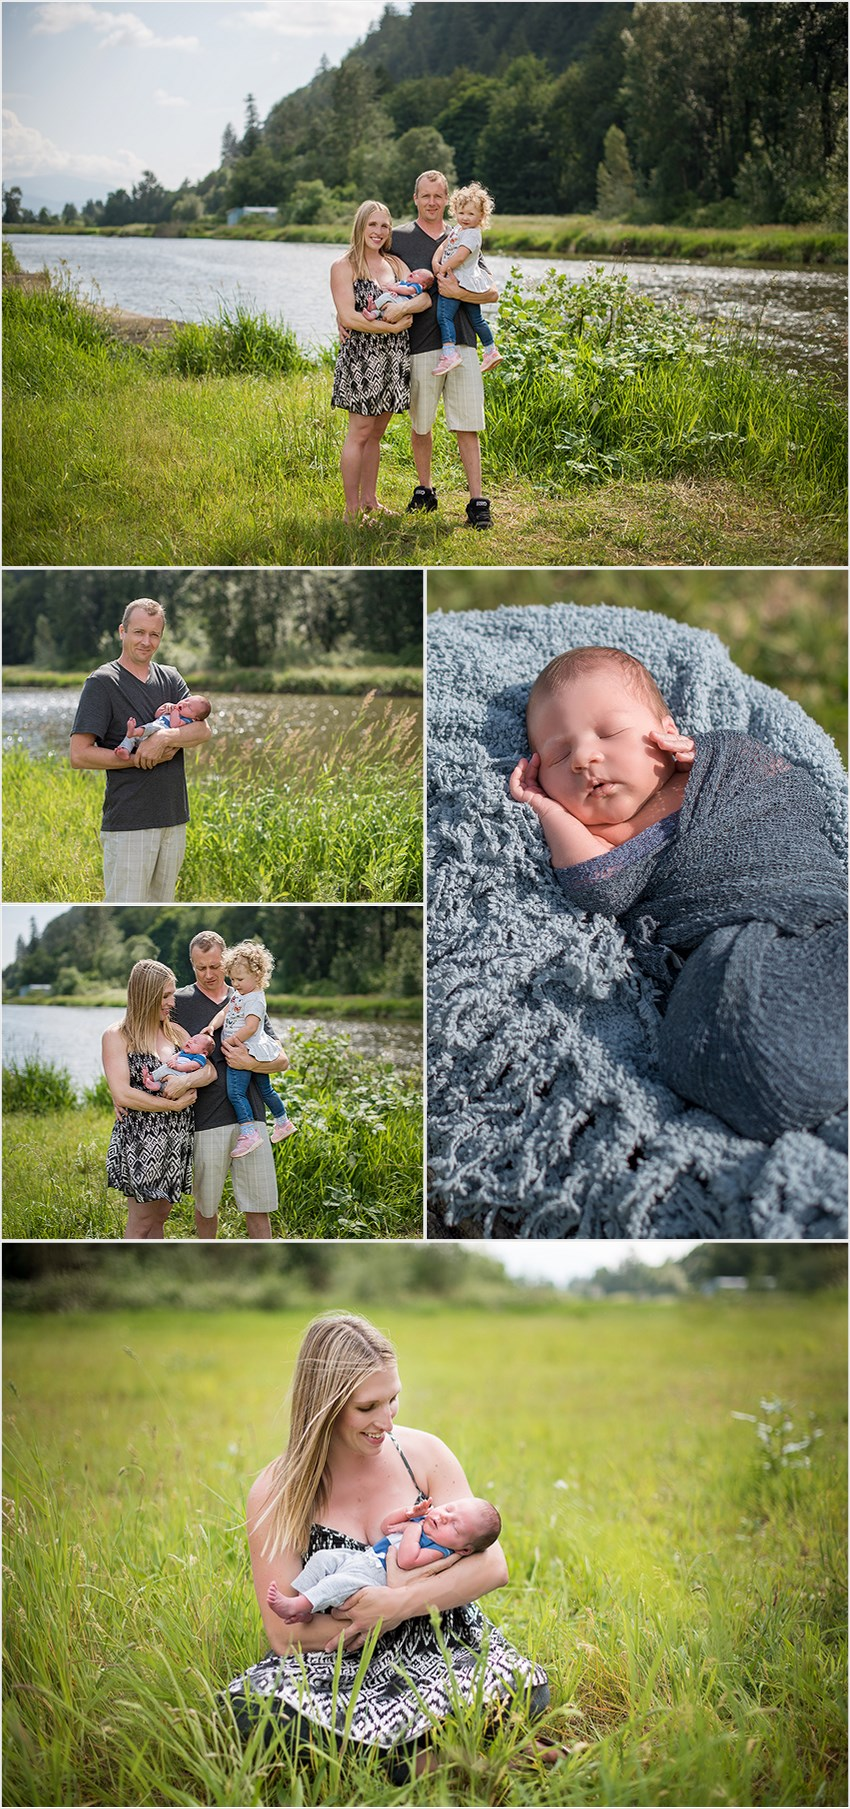 Baby Derrick Abbotsford Outdoor Newborn Photographer 004 (Side 4)